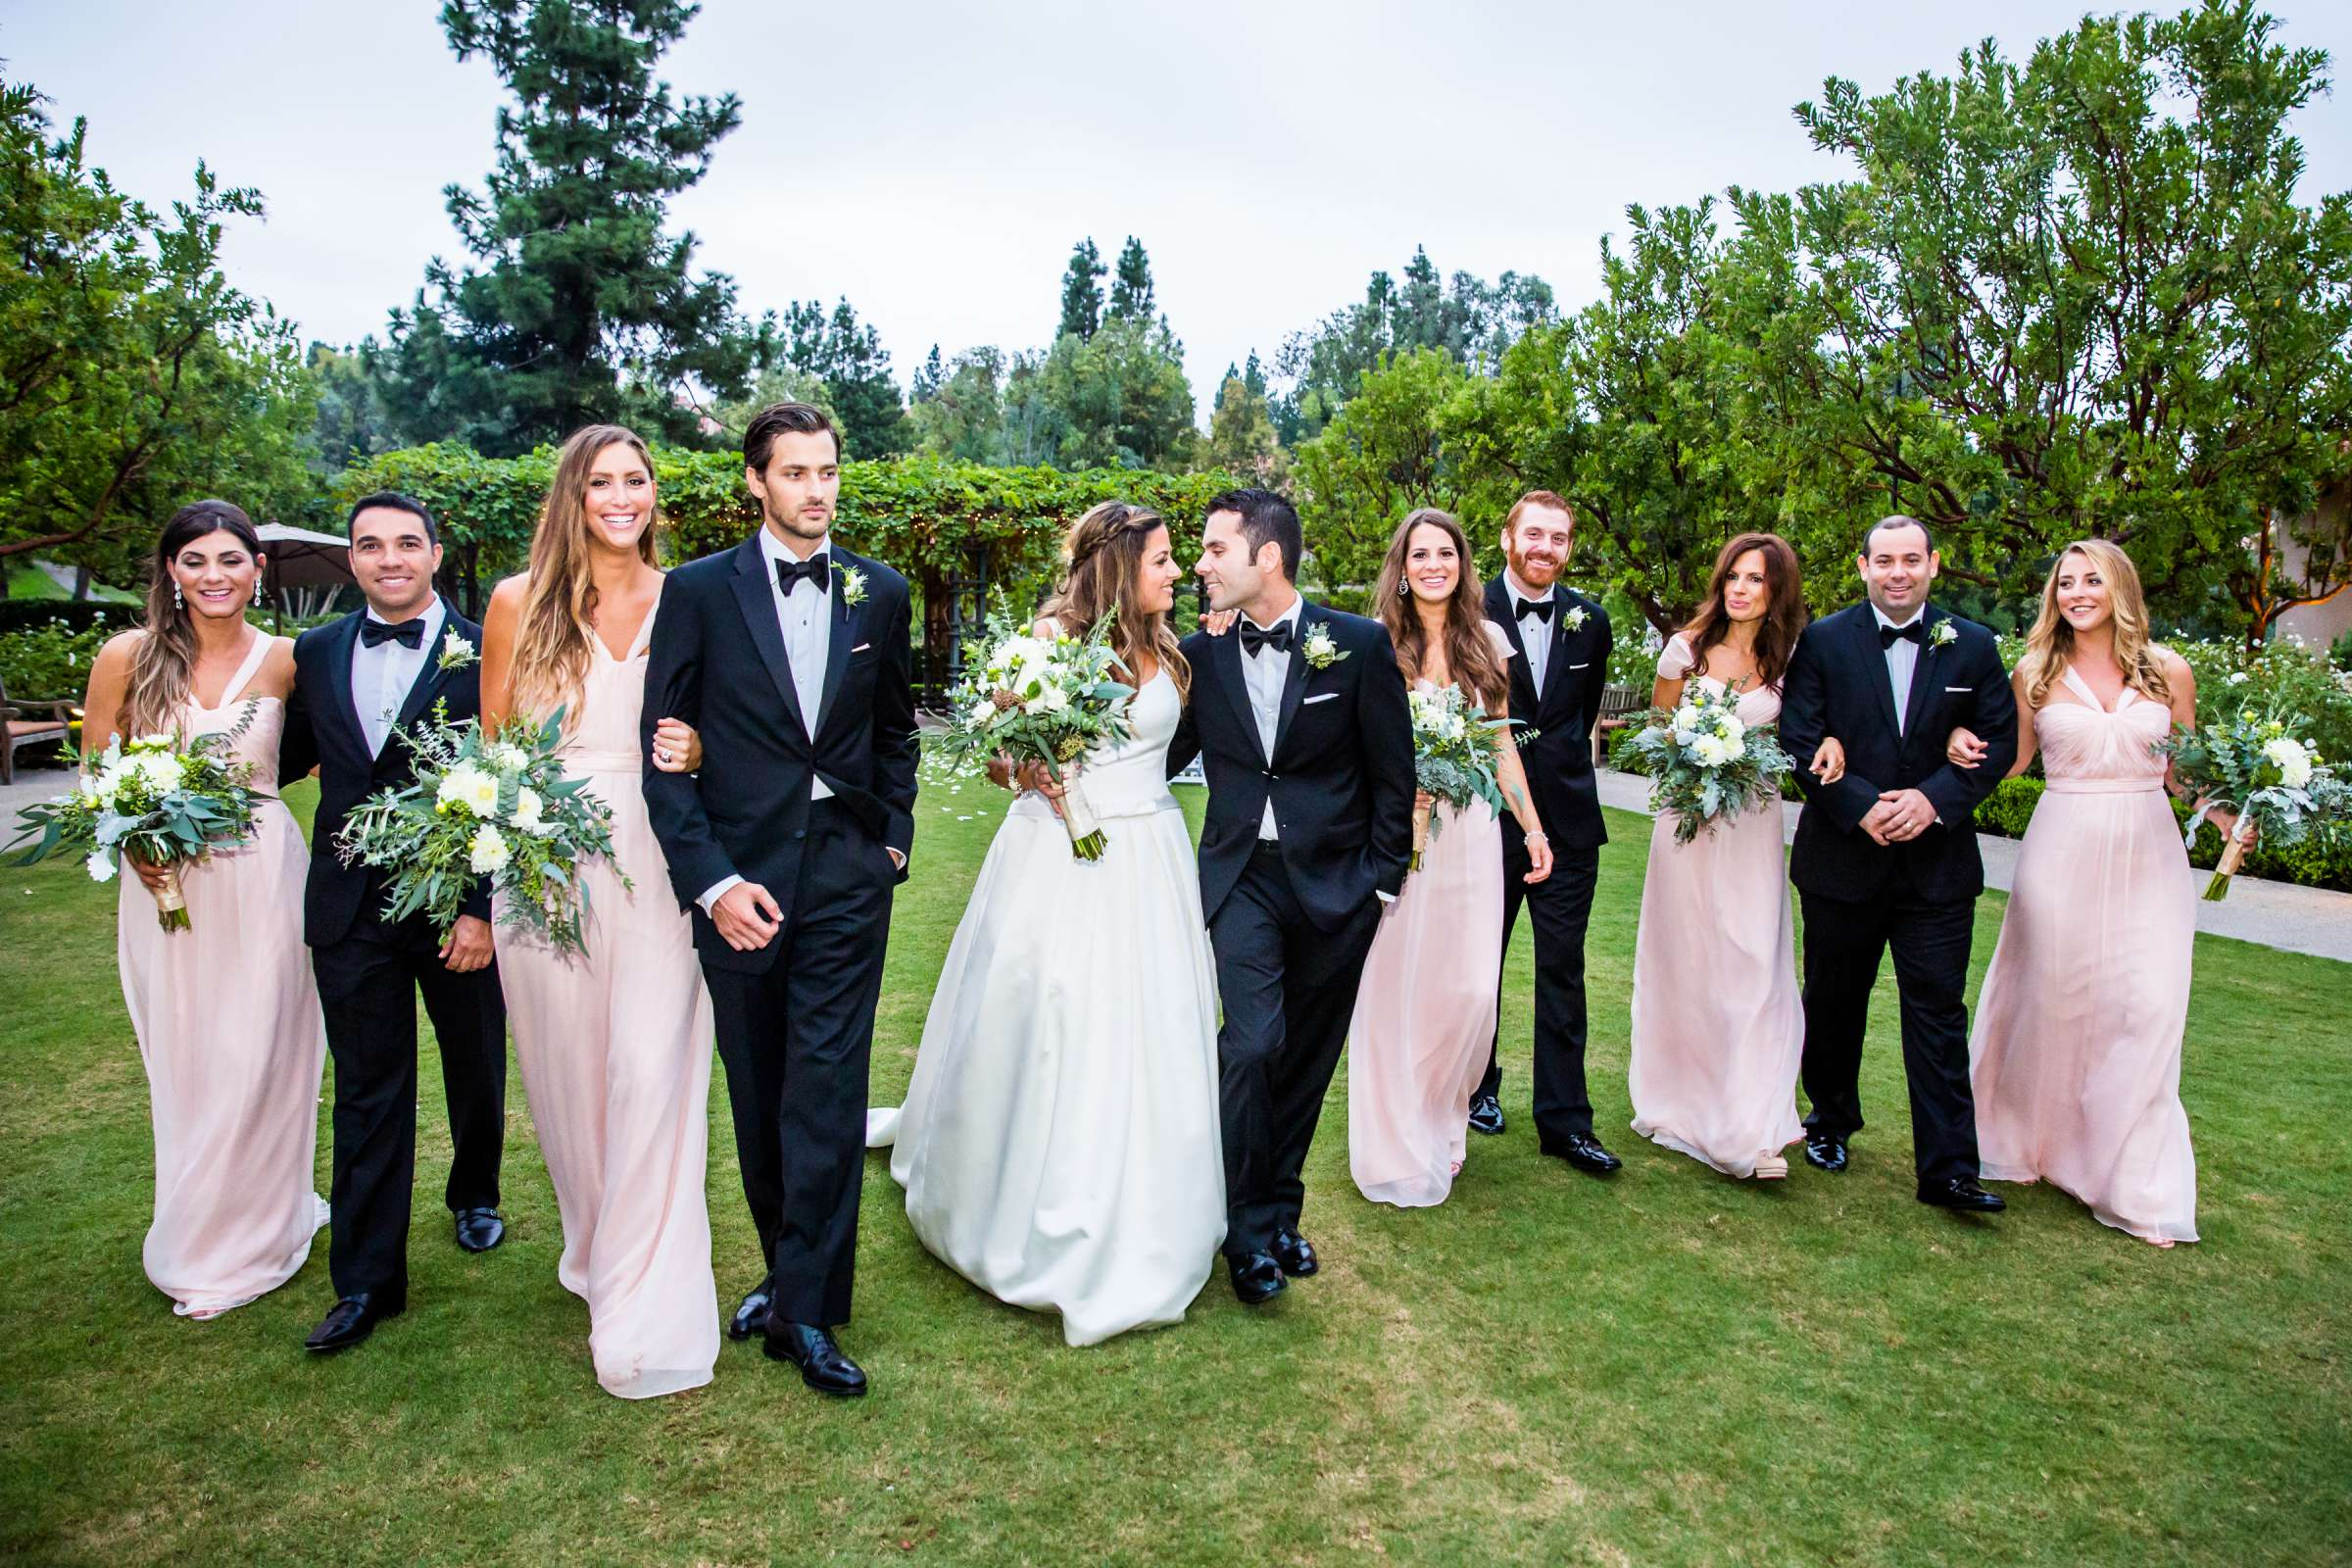 Rancho Bernardo Inn Wedding coordinated by Très Chic Events, Stefania and Nicholas Wedding Photo #91 by True Photography